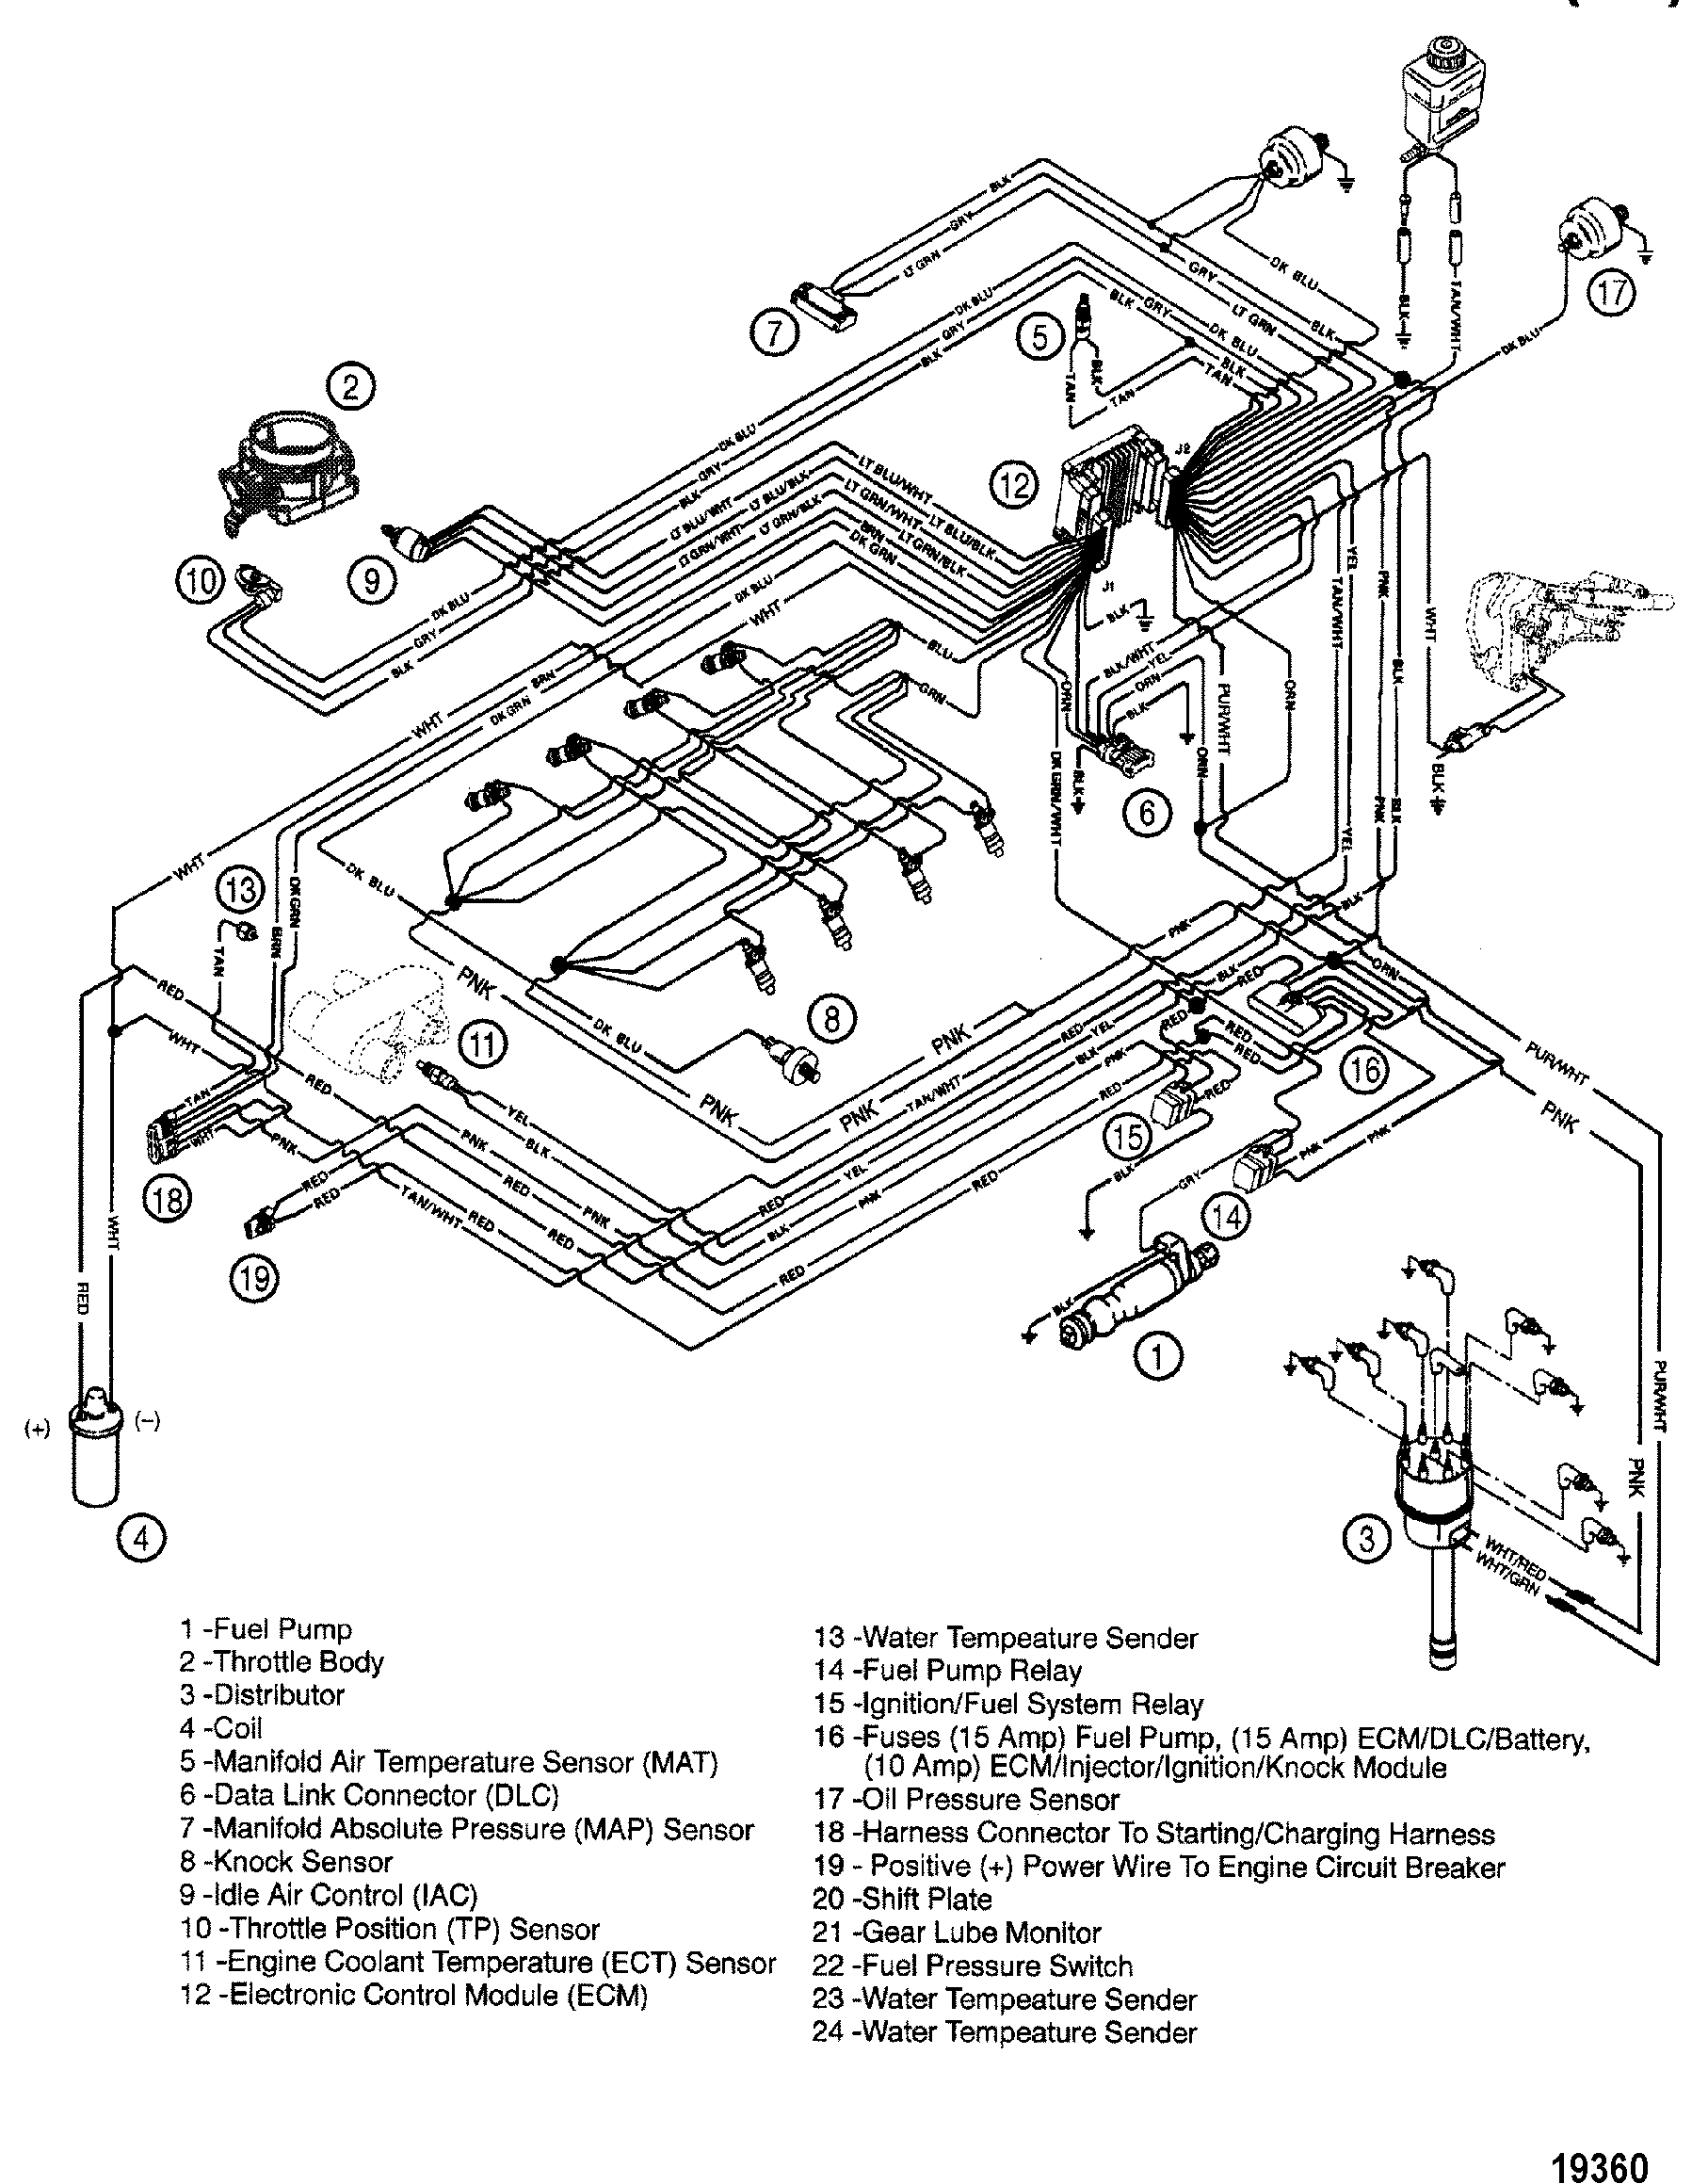 Fuel Pump Wiring Harness Hardin Marine Efi Section Drawing Hover Or Click To View Larger